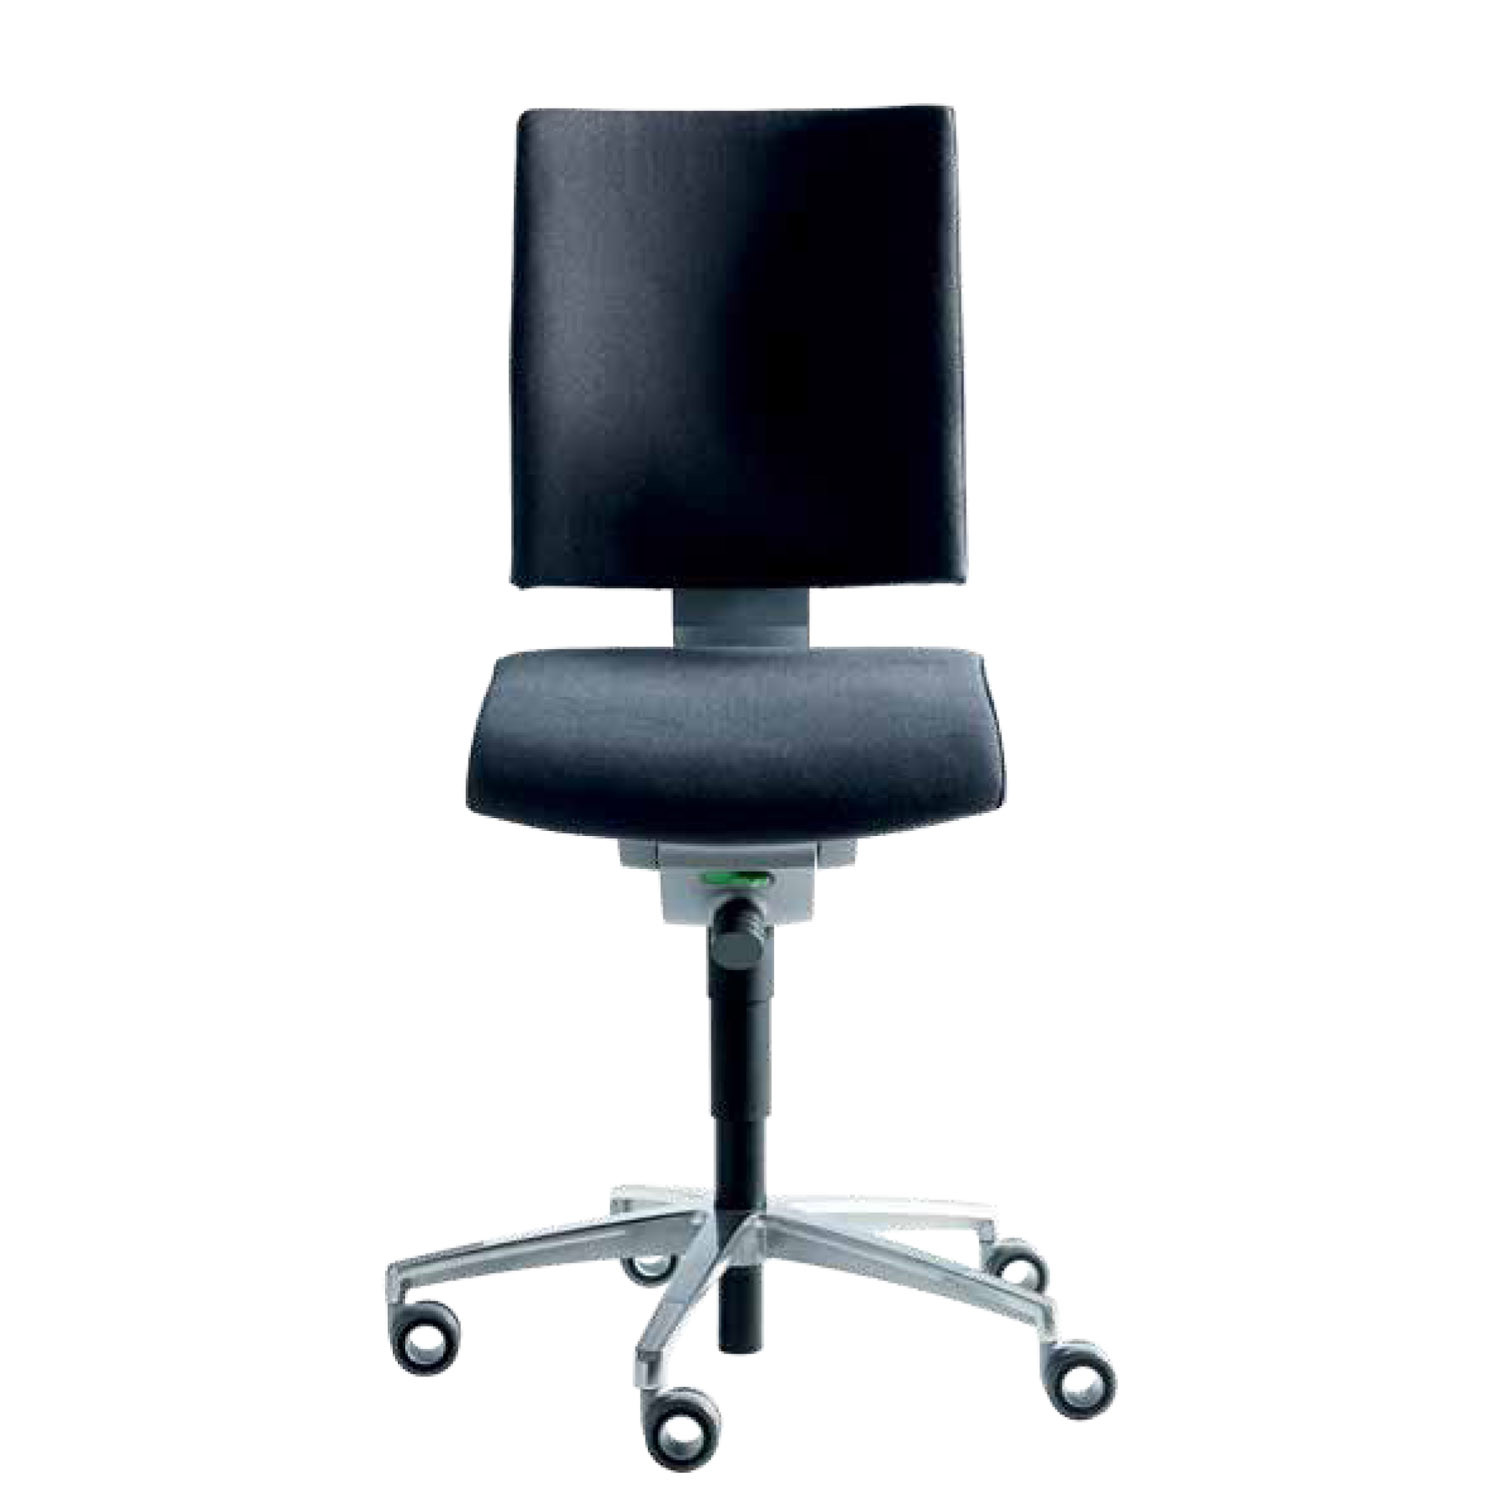 Labofa Ego Nordic Task Chair